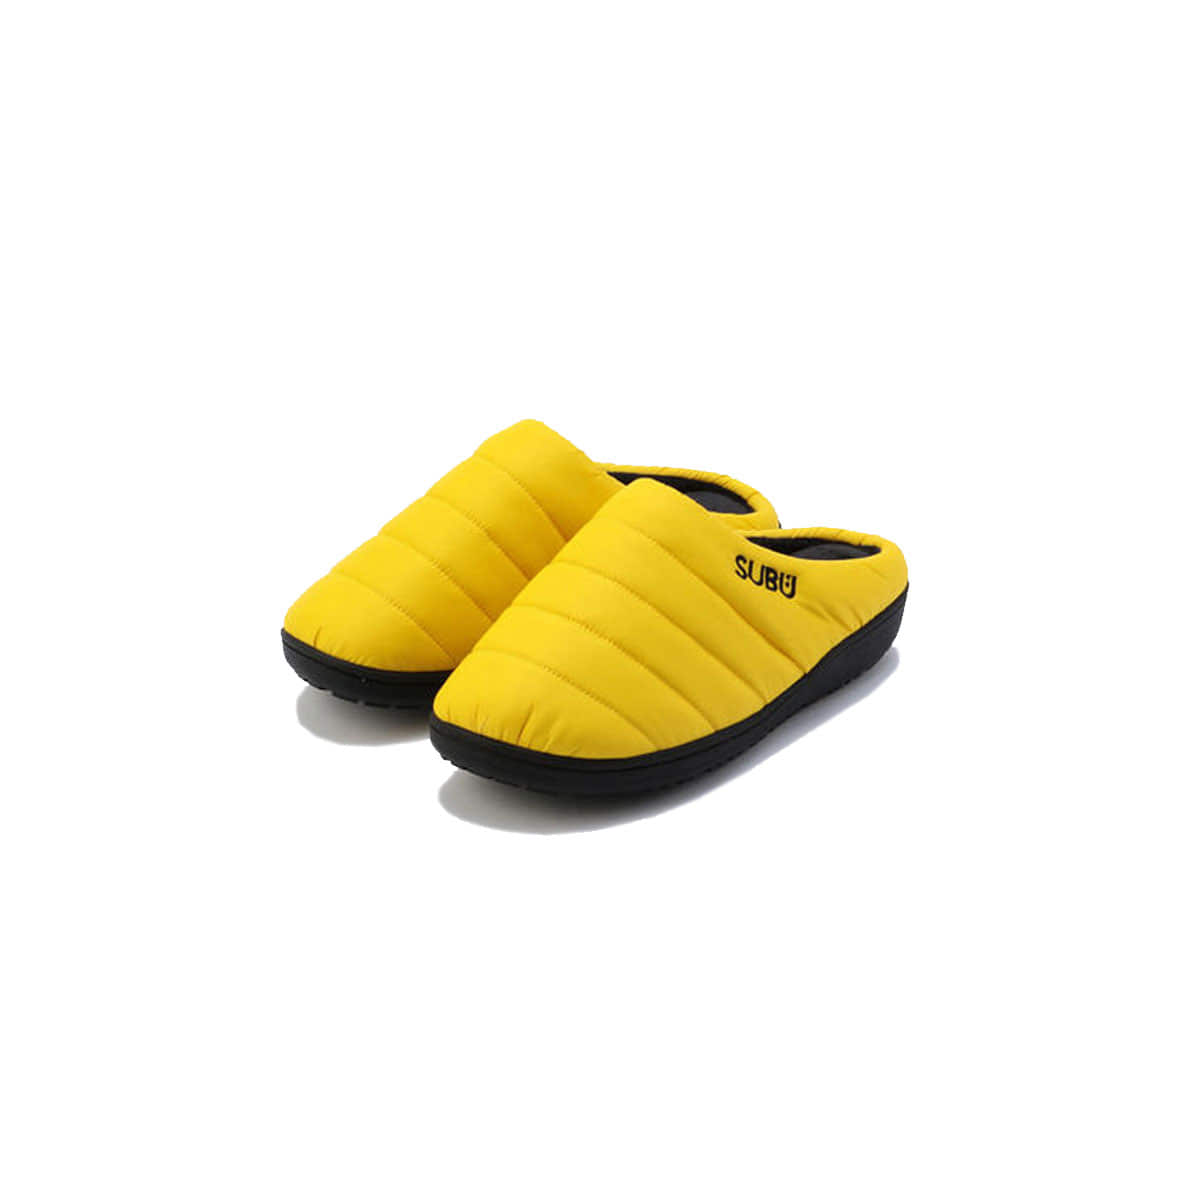 [SUBU] DOWN SANDAL 'VIBRANT YELLOW'